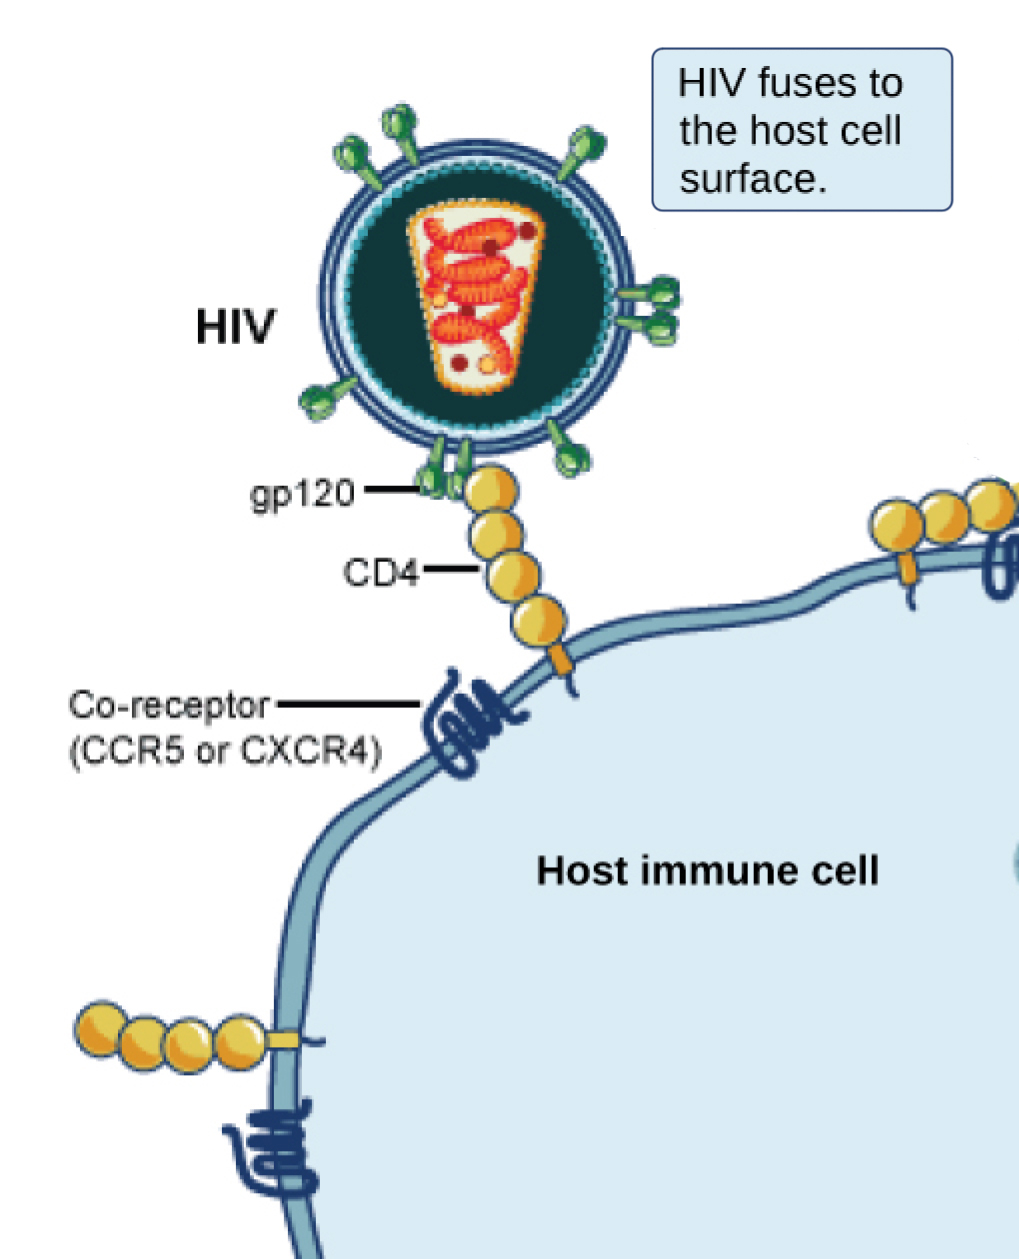 In the illustration a viral receptor on the surface of an H I V virus is attaches to a co-receptor embedded in the plasma membrane. The co-receptor is either C C R 5 or C X C R 4.